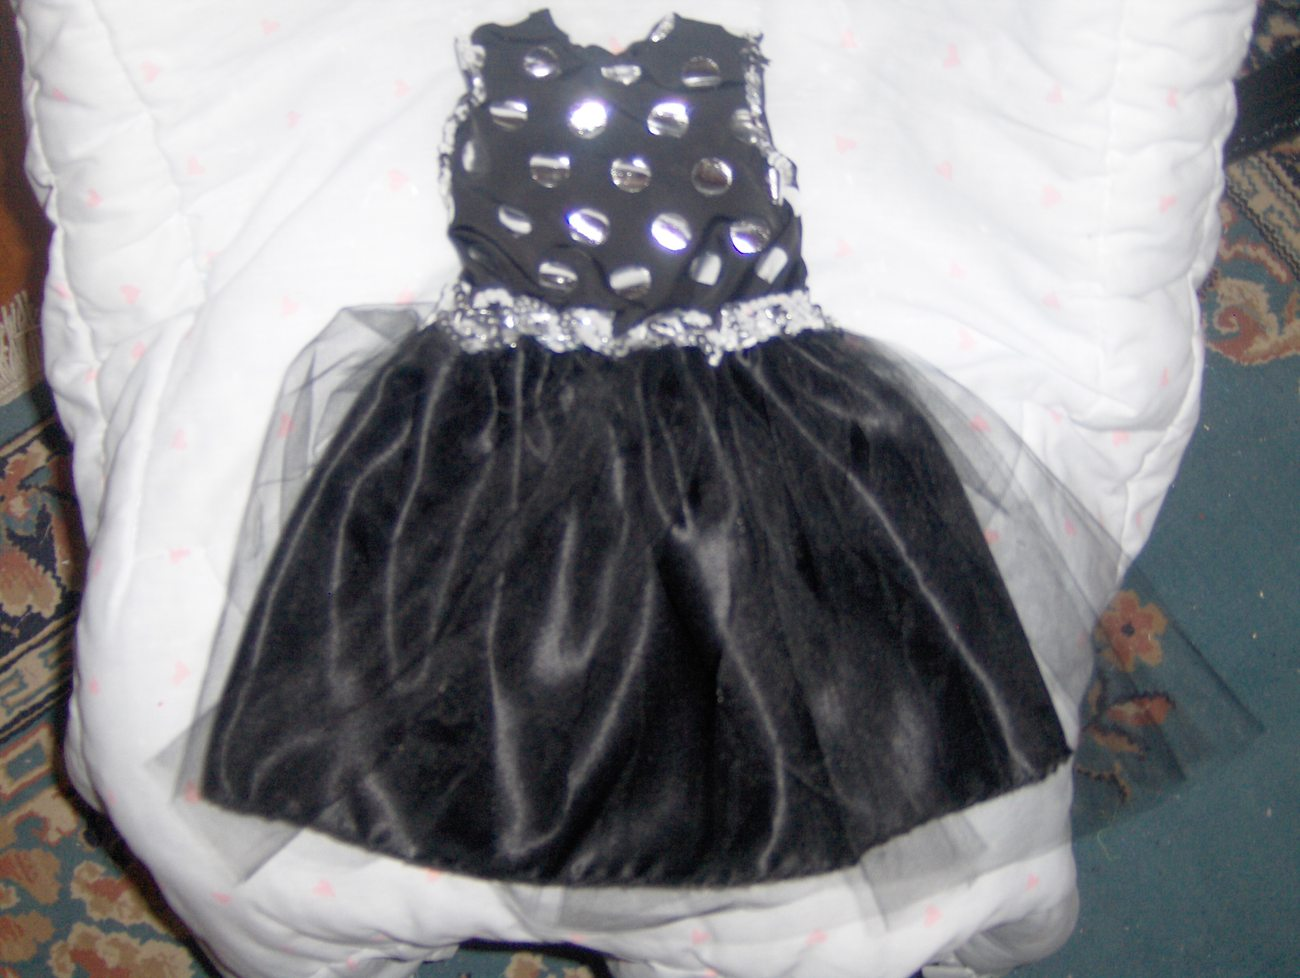 Black and Silver Polka Dot Dress with Satin Skirt and Tulle